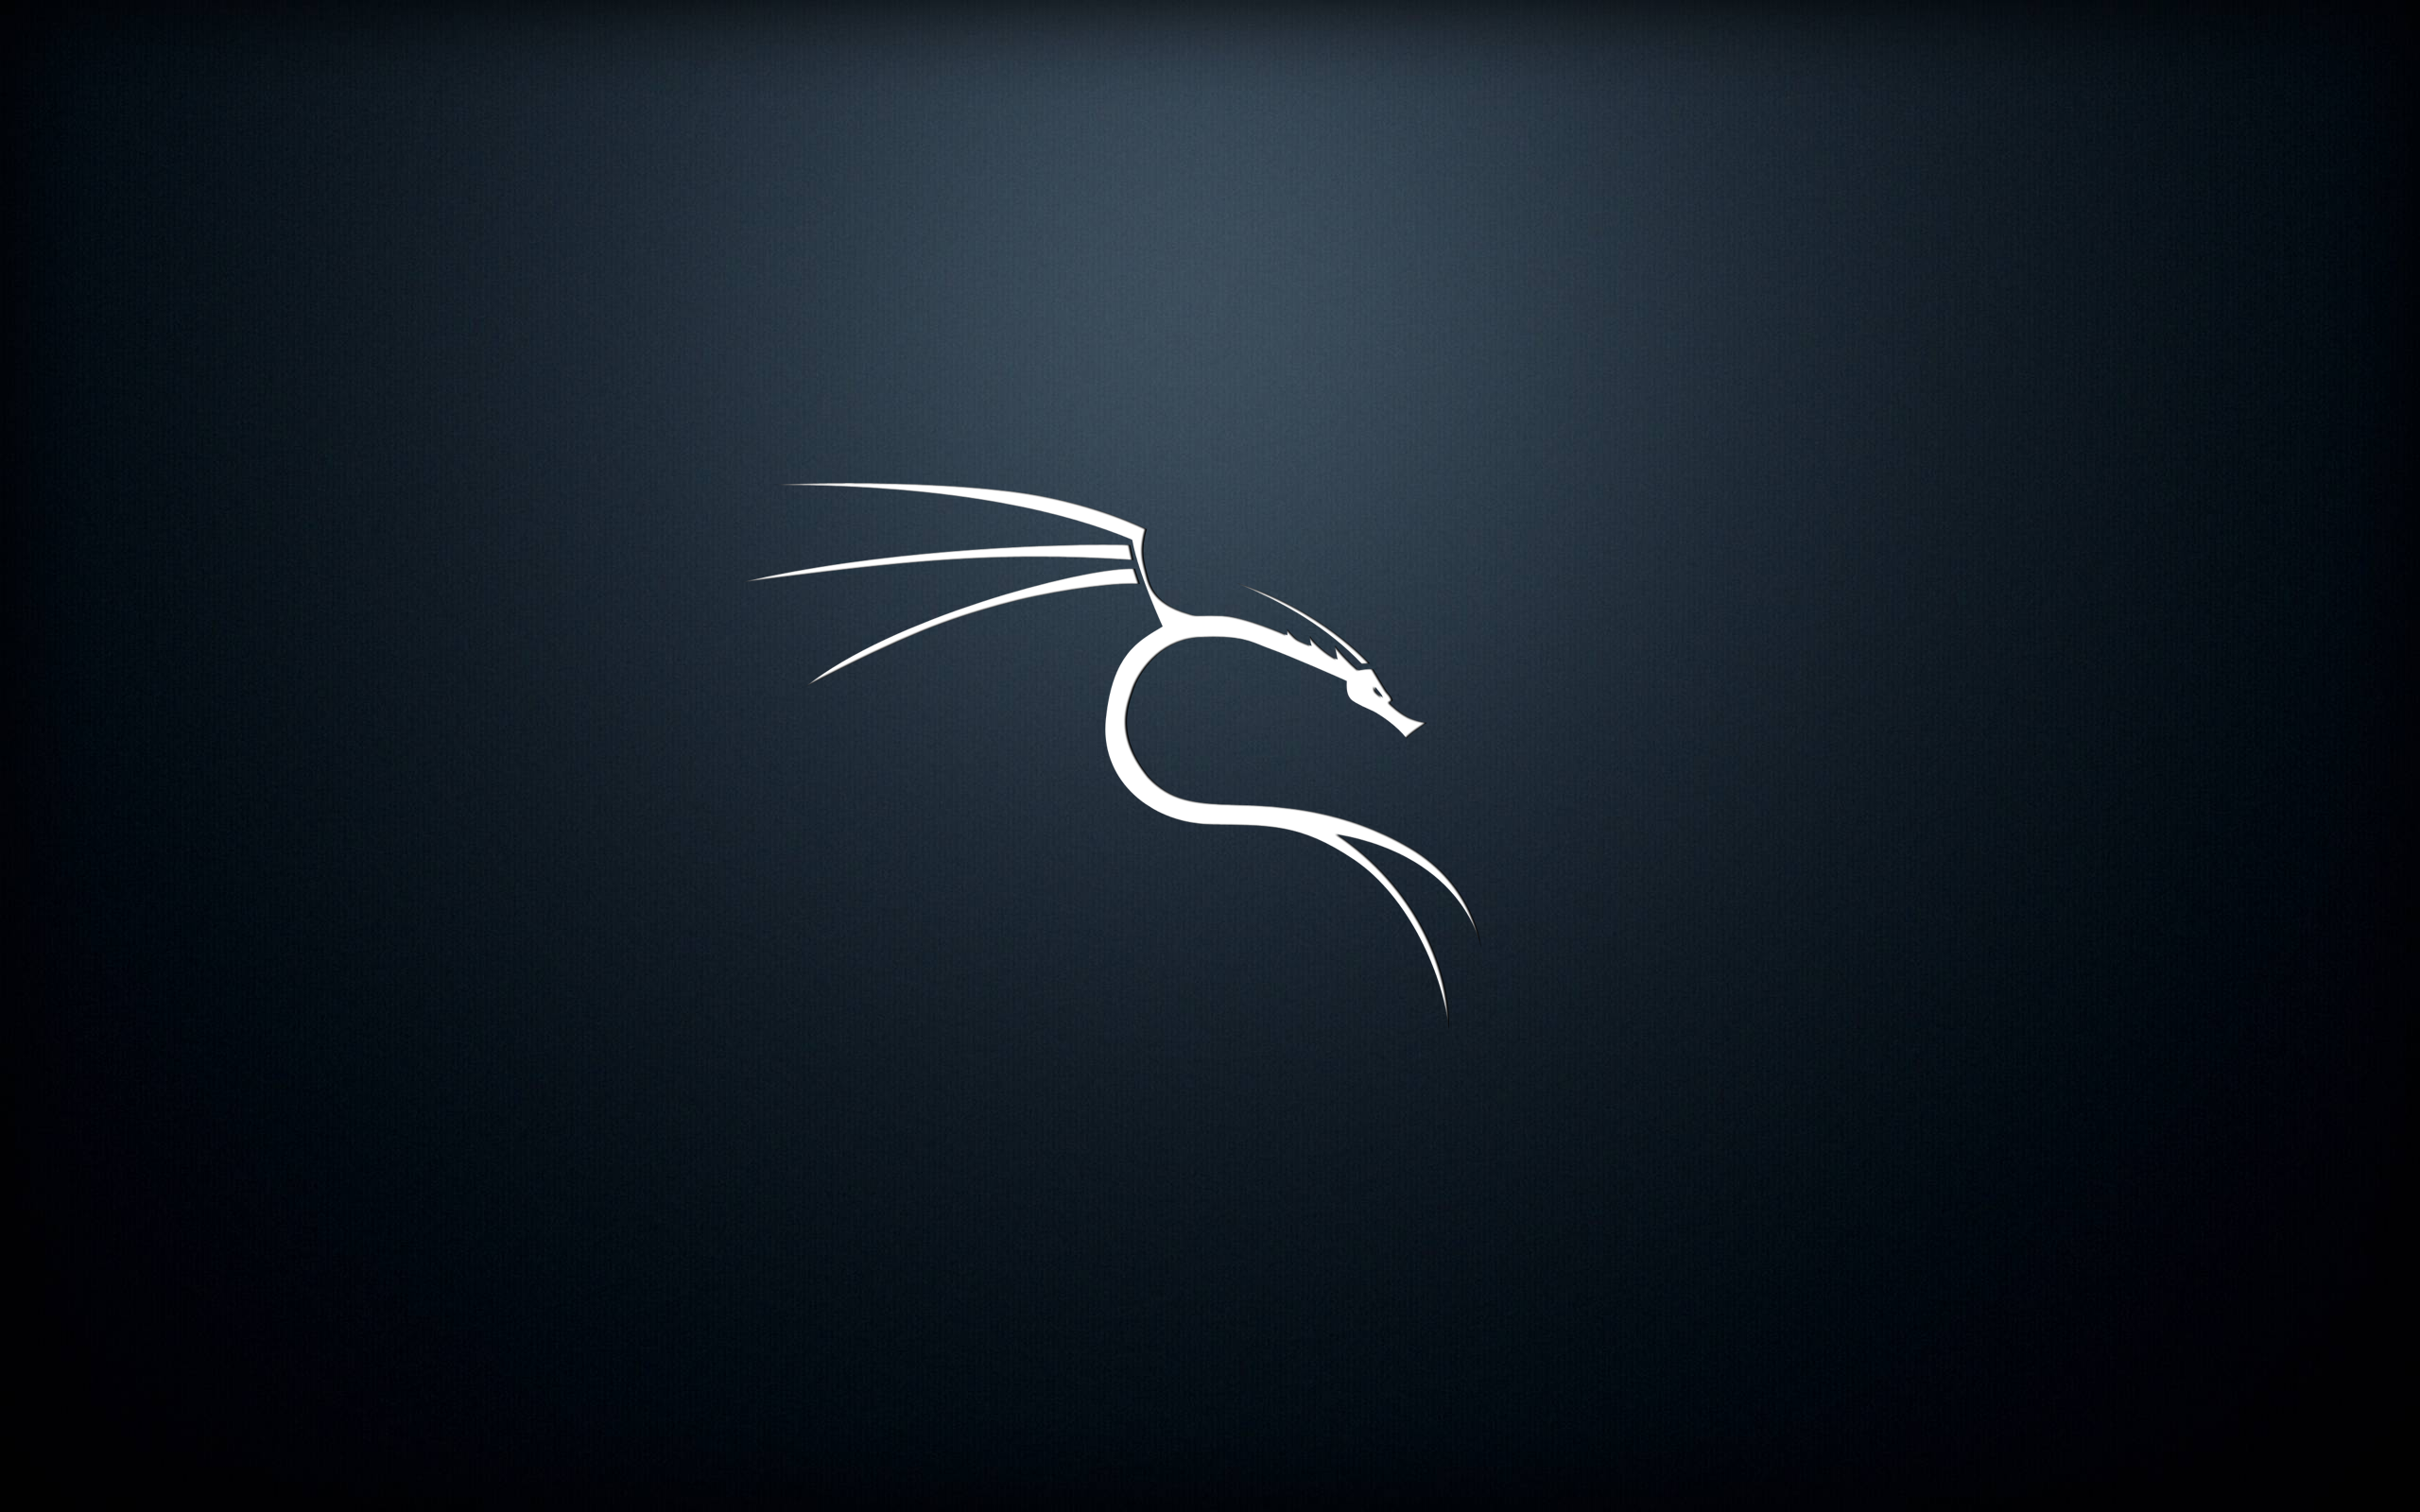 Kali Linux Collection See All Wallpapers Wallpapers Background Internet Linux Windows Wallpaper Kali